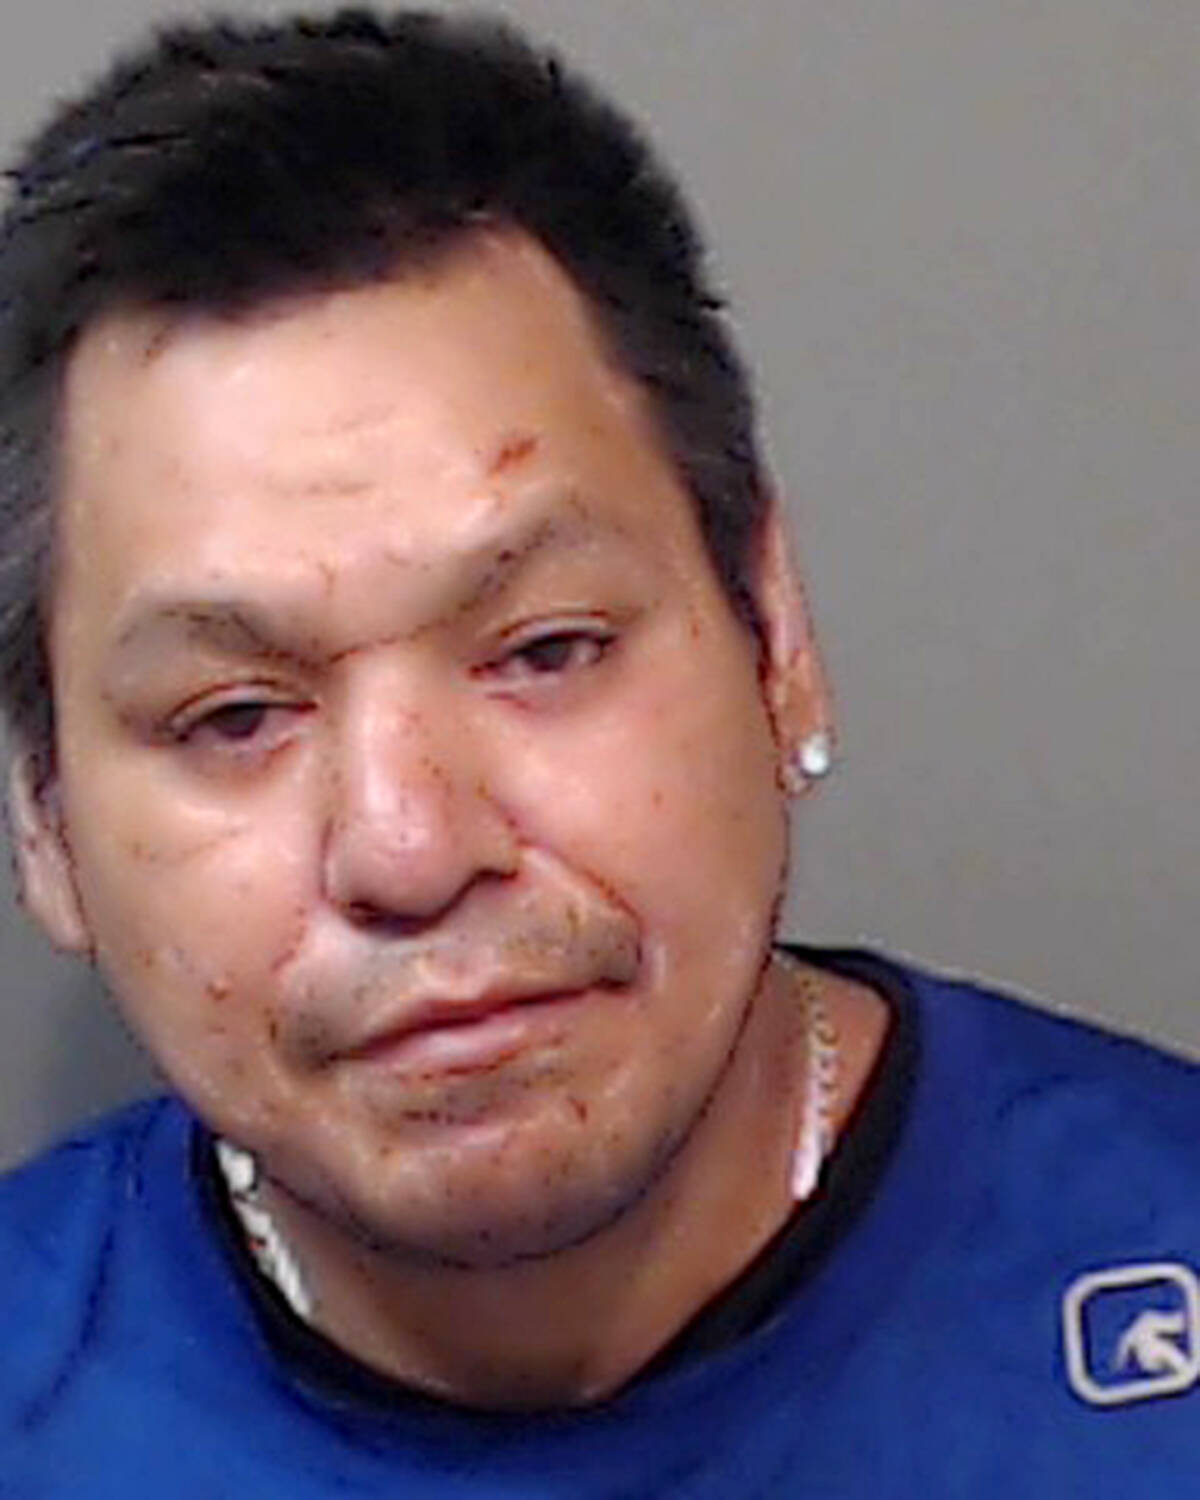 SEPASS, Christopher Age: 35 Height: 5 ft 8 in Weight: 181 lbs Hair: Black Eyes: Brown Wanted: Fail to comply with probation order Warrant in effect: Sept. 28, 2021 Parole Jurisdiction: Chilliwack, B.C.